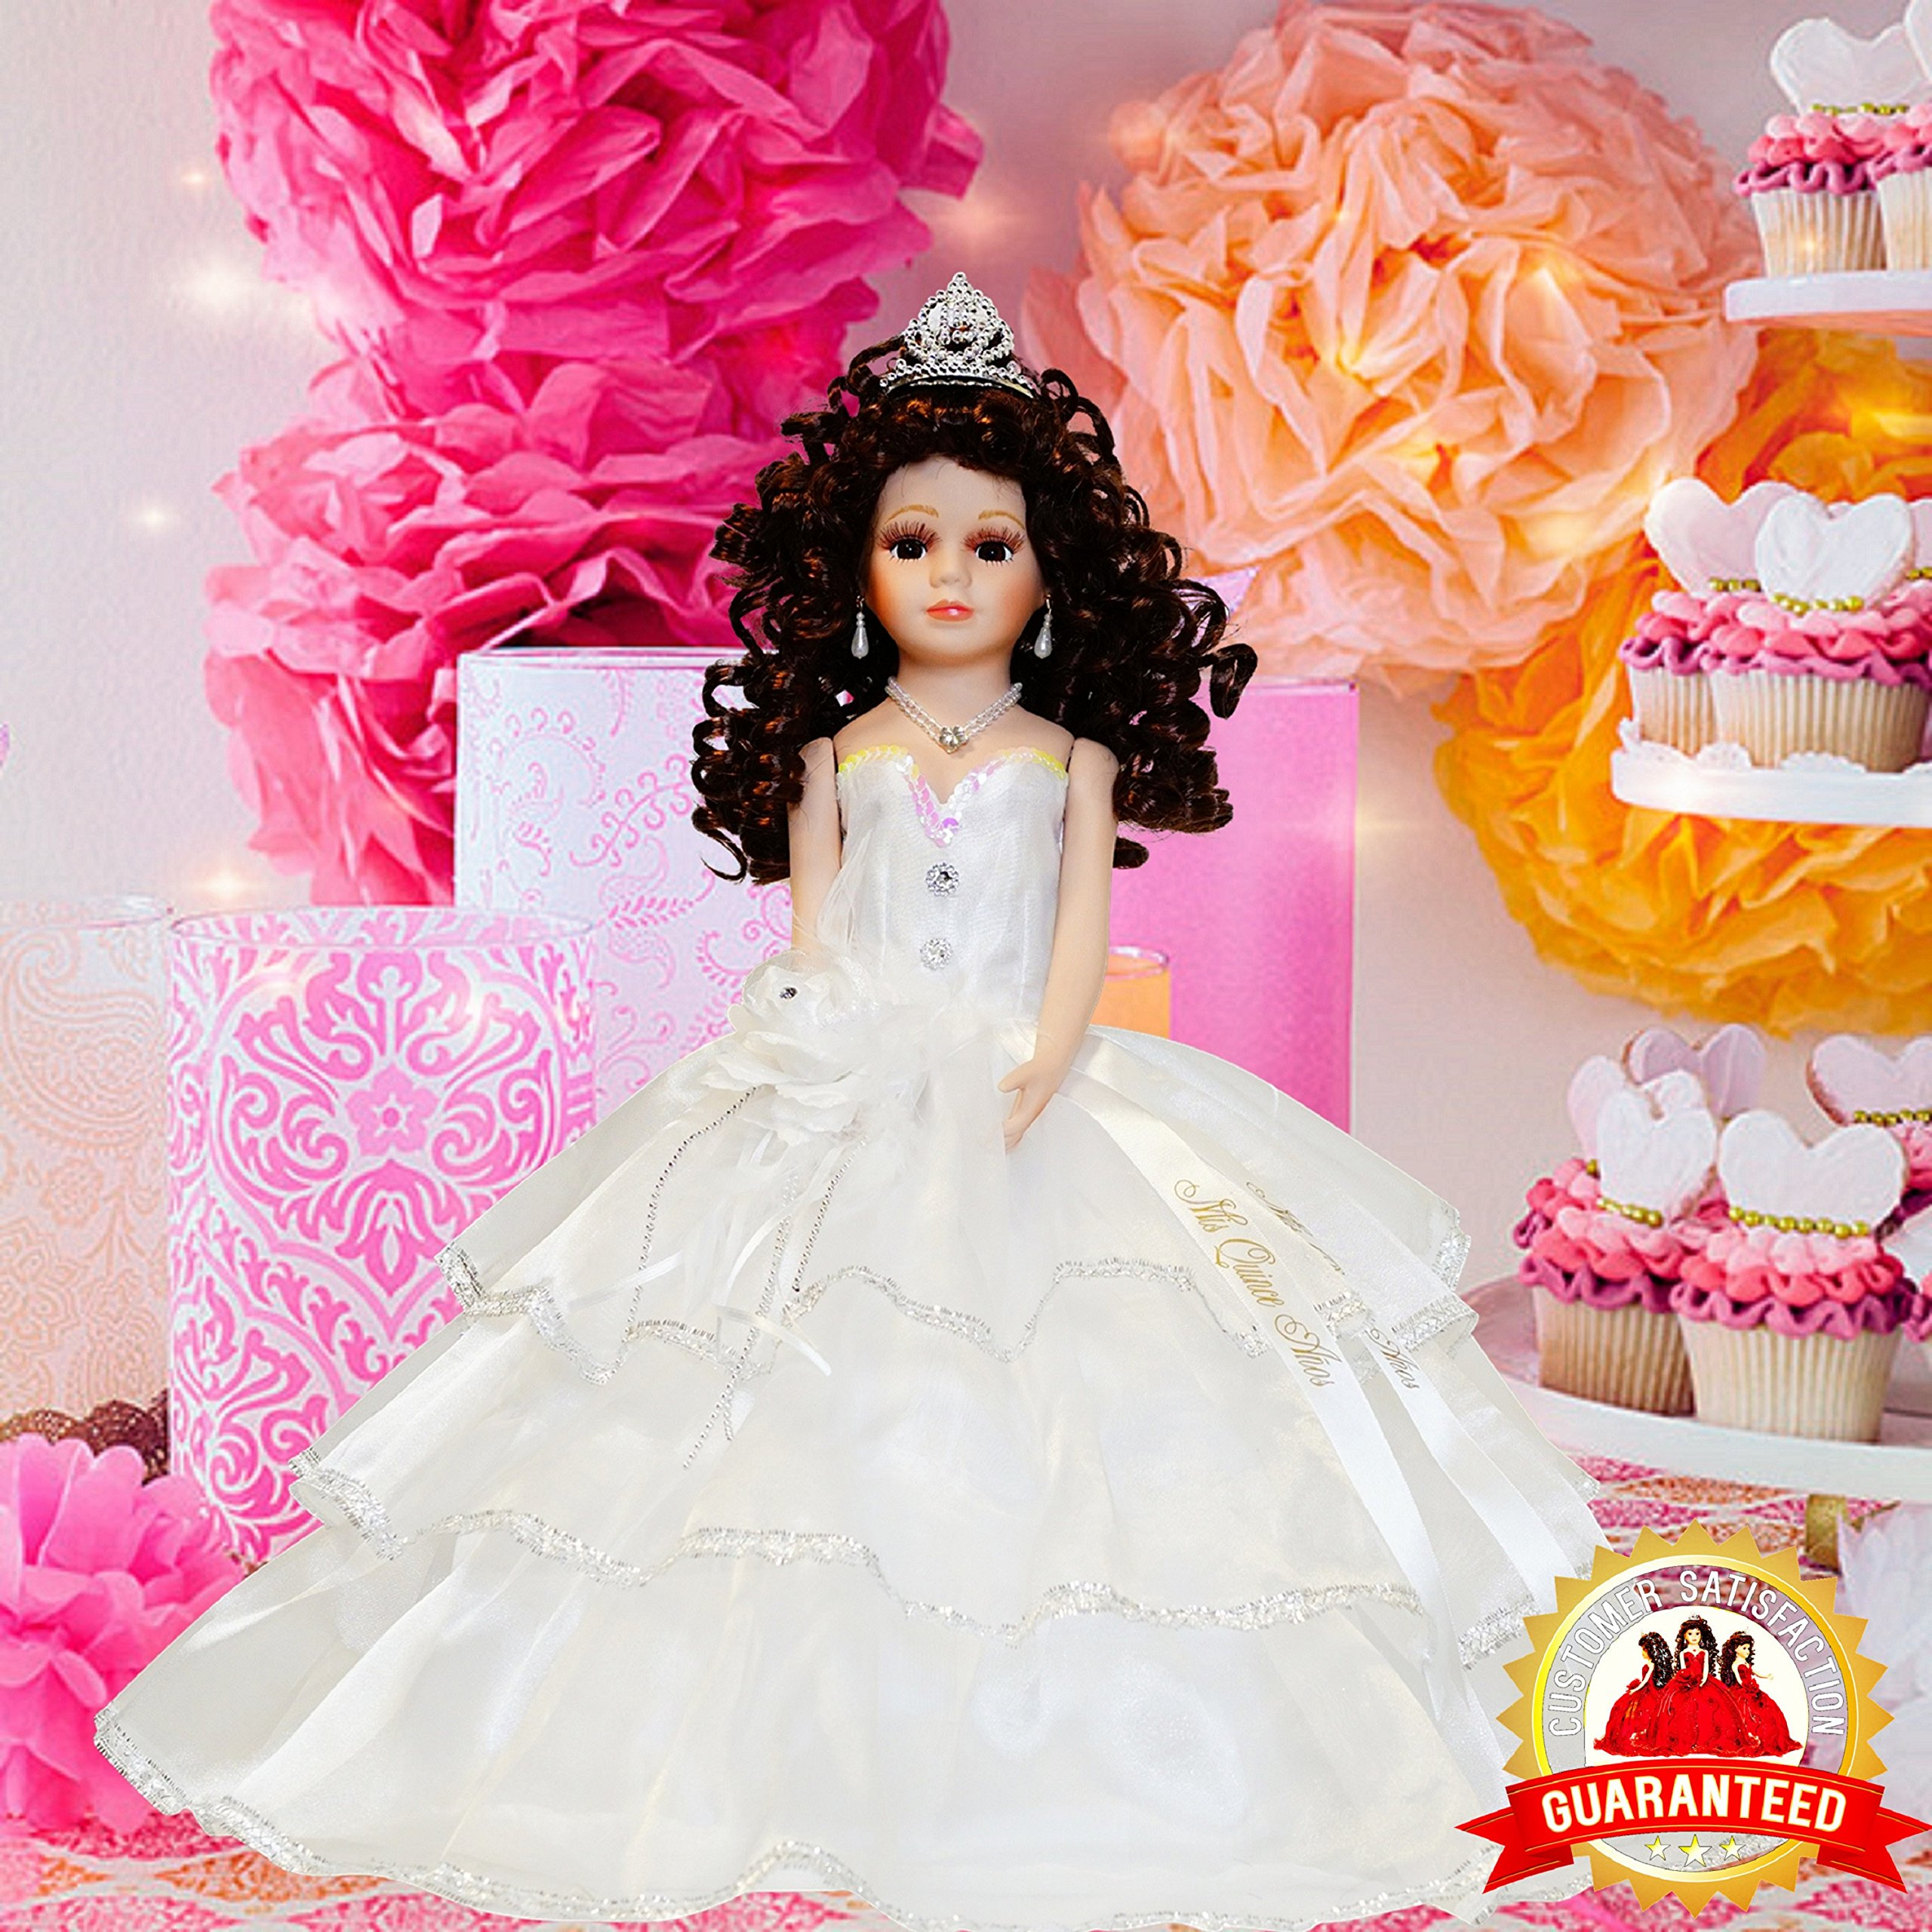 Kinnex Collections by Amanda 18'' Porcelain Quinceanera Umbrella Doll (Table Centerpiece)~White~ KB18724-1B